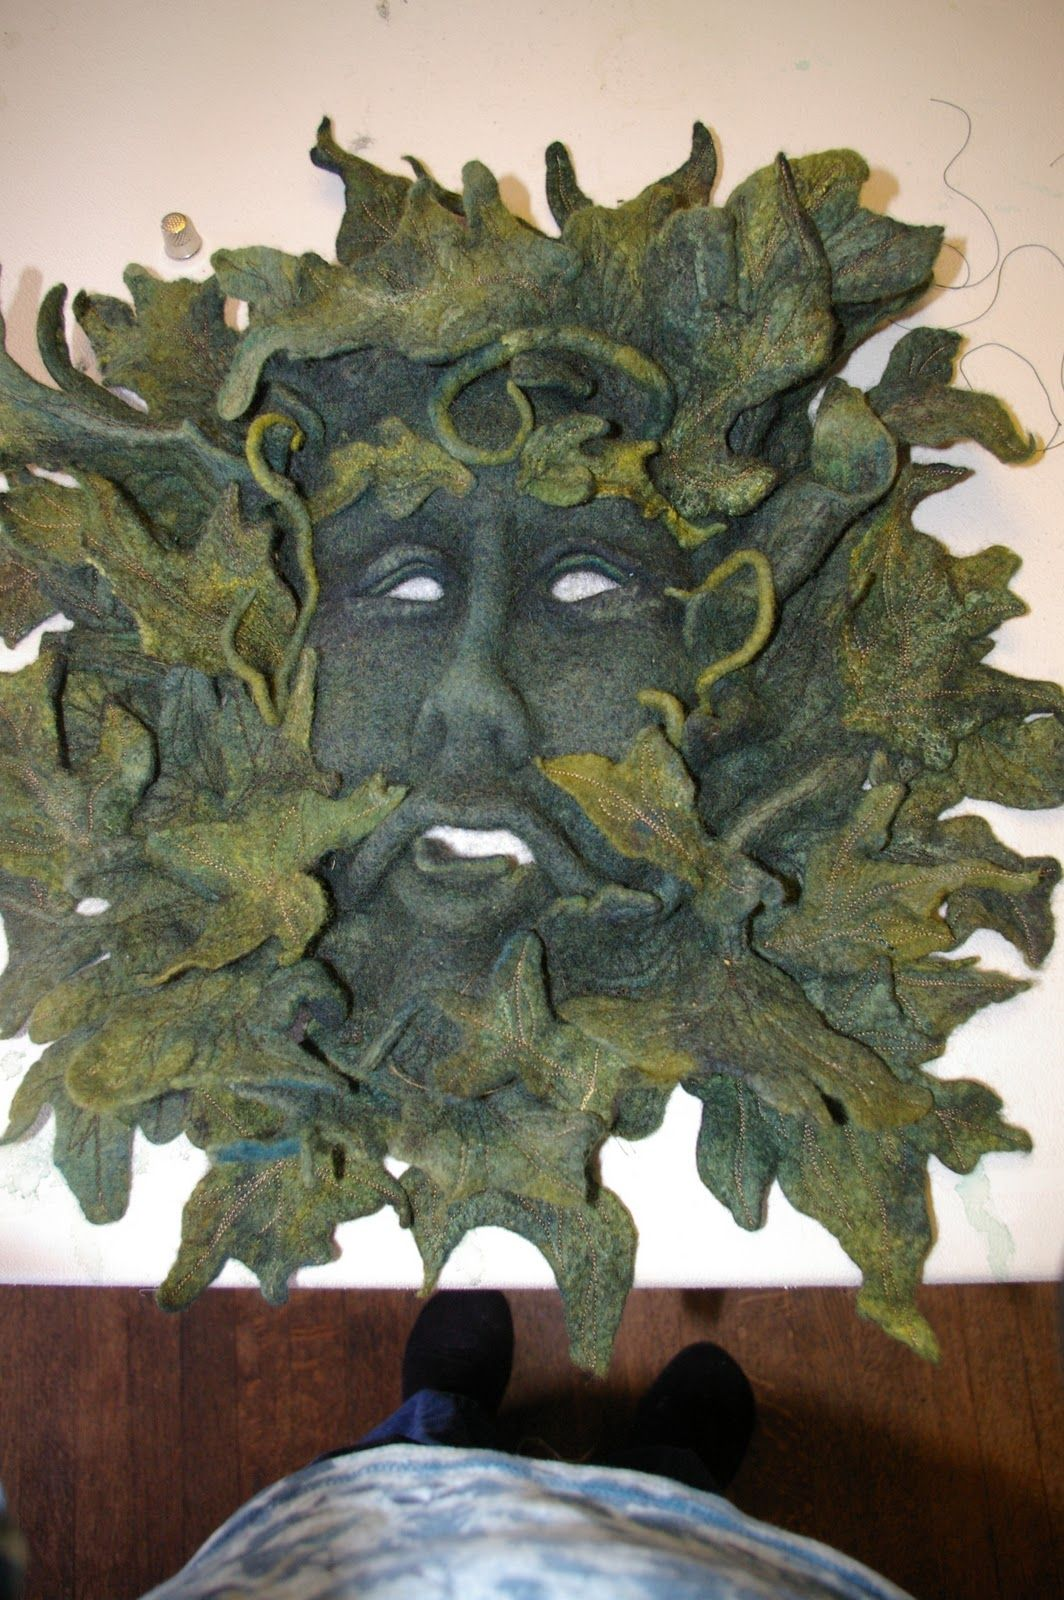 Felted Green Man mask - beautiful.  I had never considered using felt for a mask!